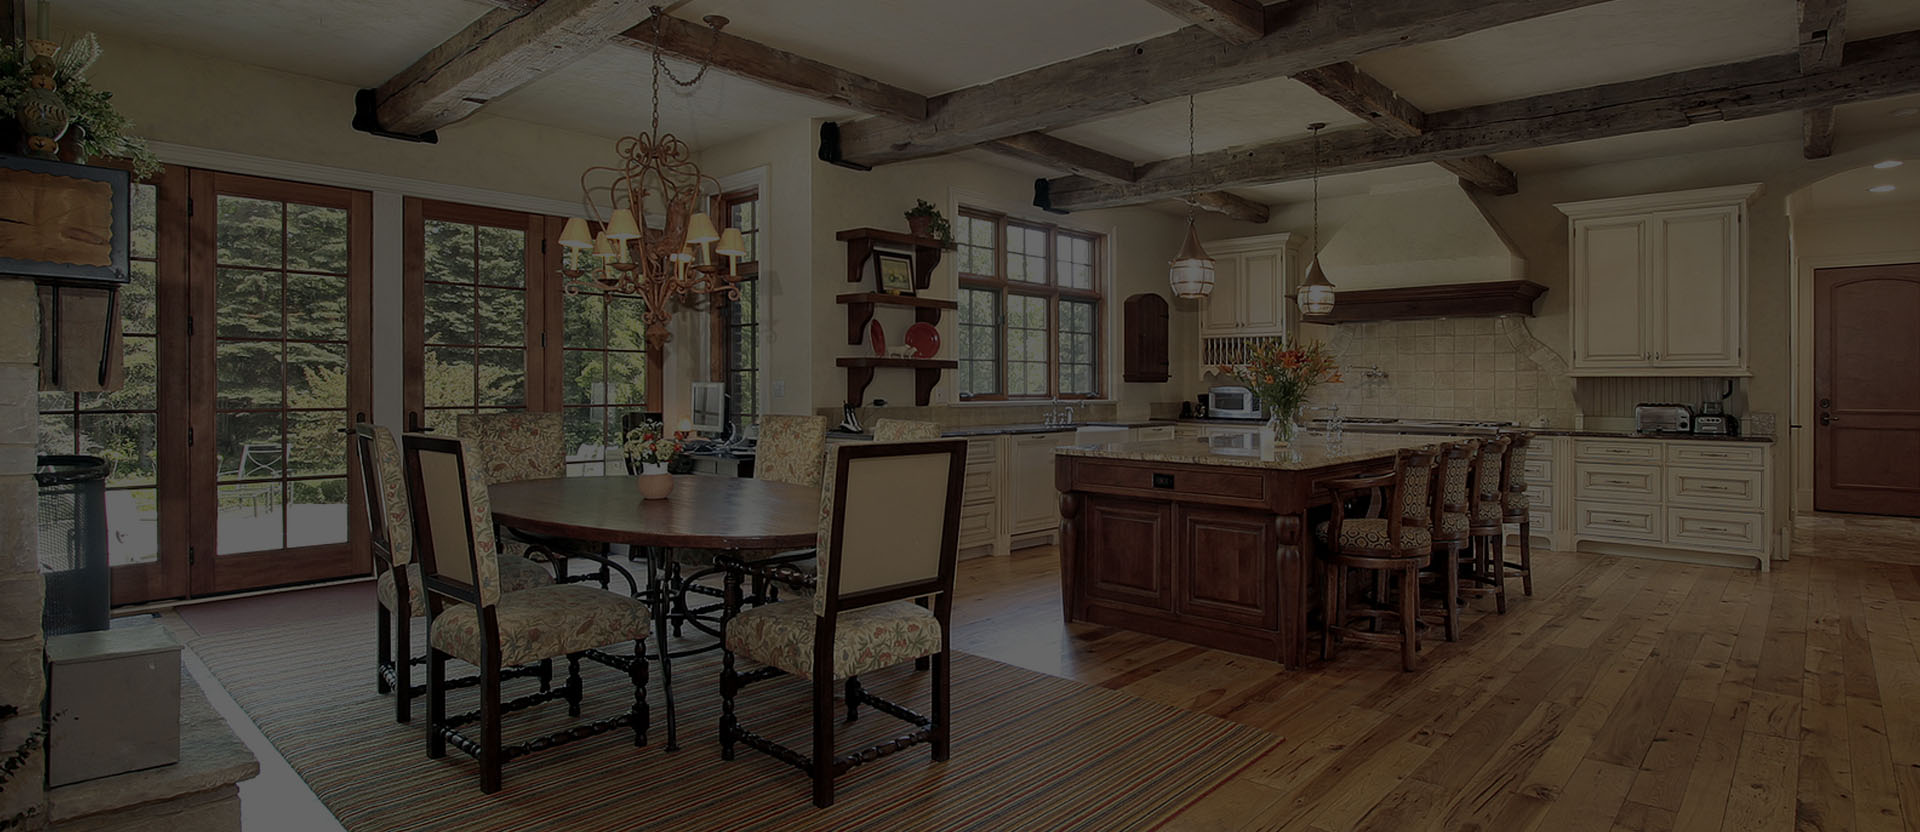 Kitchen ideas for your timber frame home post beam for Post and beam kitchen ideas